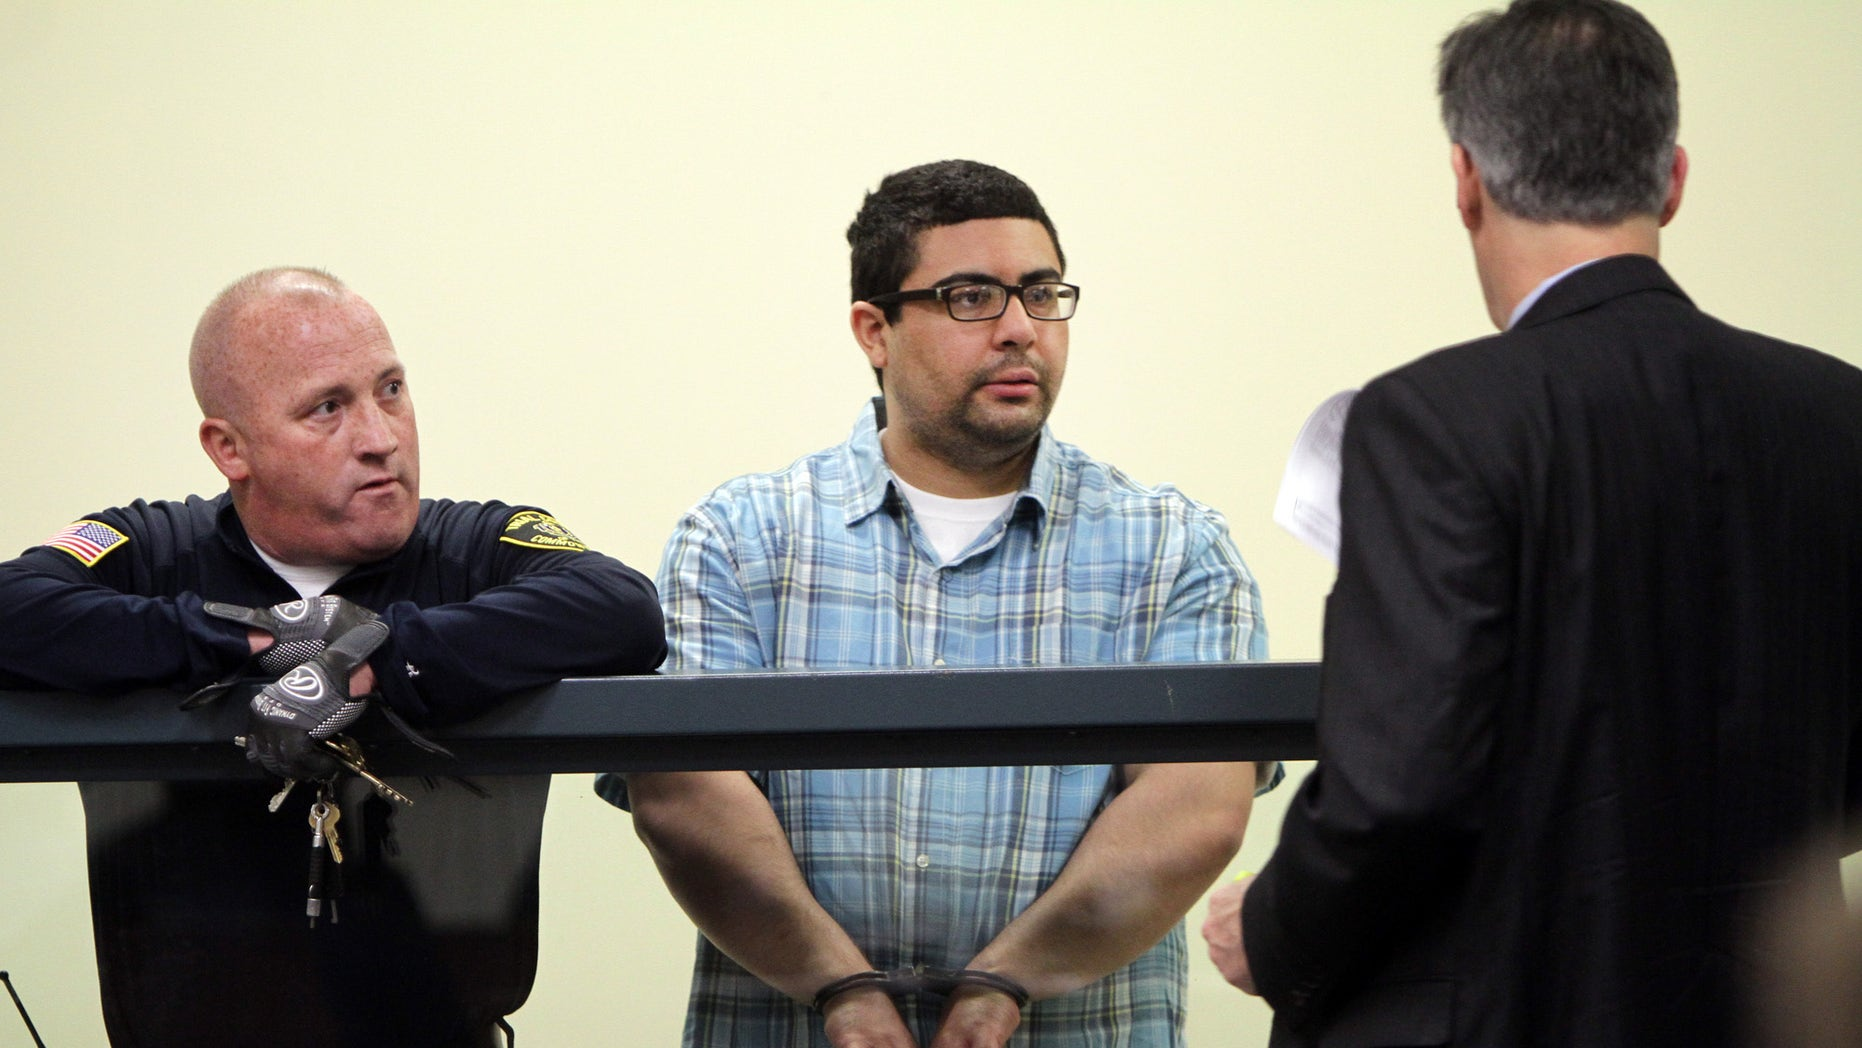 Carlos Colina, center, speaks with his attorney John Cunha, Jr., right, during his arraignment in Cambridge District Court in Medford, Mass., Monday, April 6, 2015.  Colina was charged with being an accessory after the crime of assault and battery causing serious bodily injury and the improper disposal of human remains, after the discovery of human remains in Cambridge on Saturday. (AP Photo/The Boston Herald, Chitose Suzuki, Pool)